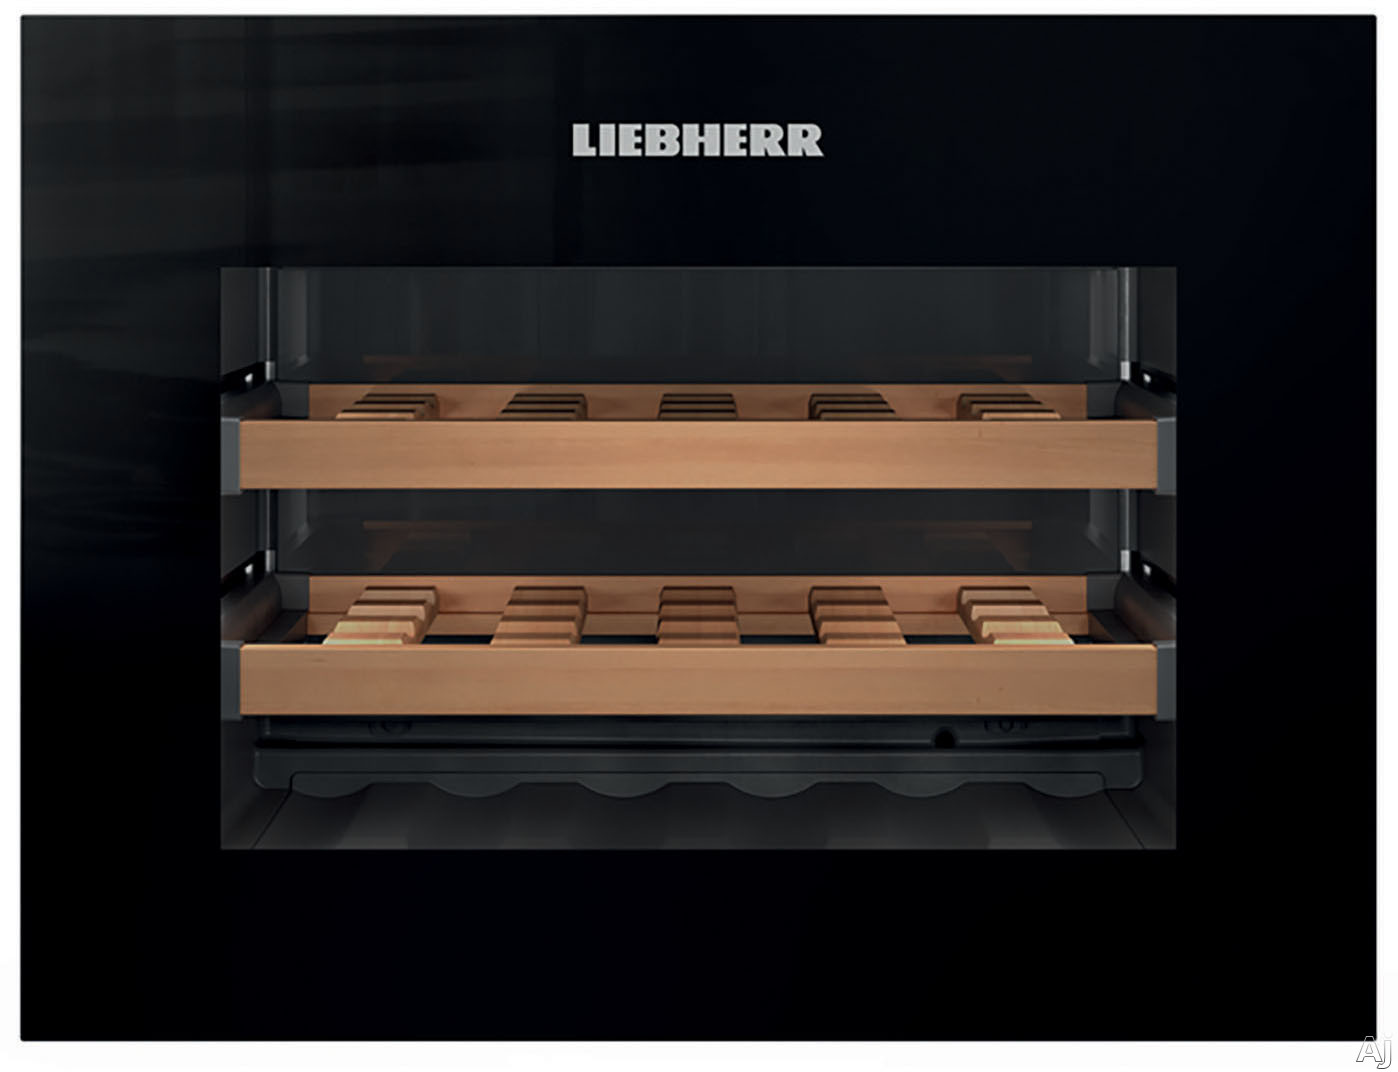 Liebherr HWG1803 24 Inch Built-in Wine Cooler with Push-to-Open Drop-Down Door, Single Zone Cooling, 18 Bottle Capacity, 1.7 cu. ft. Volume, 3 Wooden Trimmed Wine Shelves, Star-K Certified Sabbath Mode and LCD Display